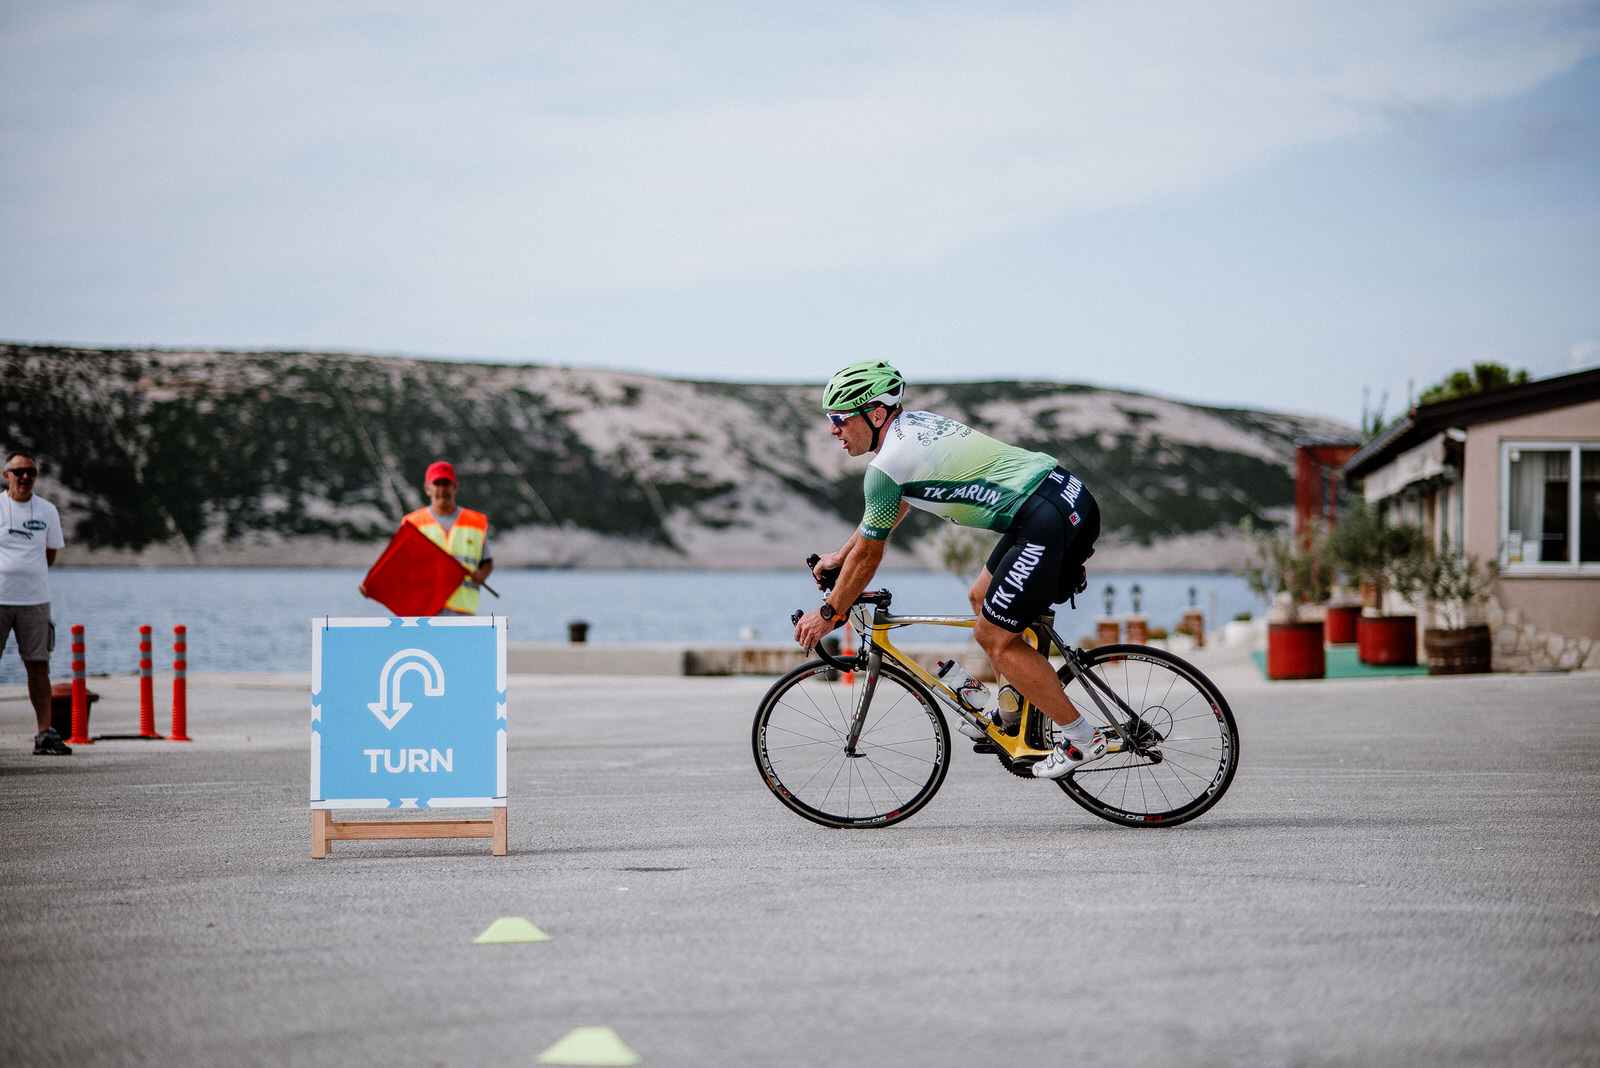 likaclub_Granfondo-Pag-–-Cycling-on-the-Moon_2019-43